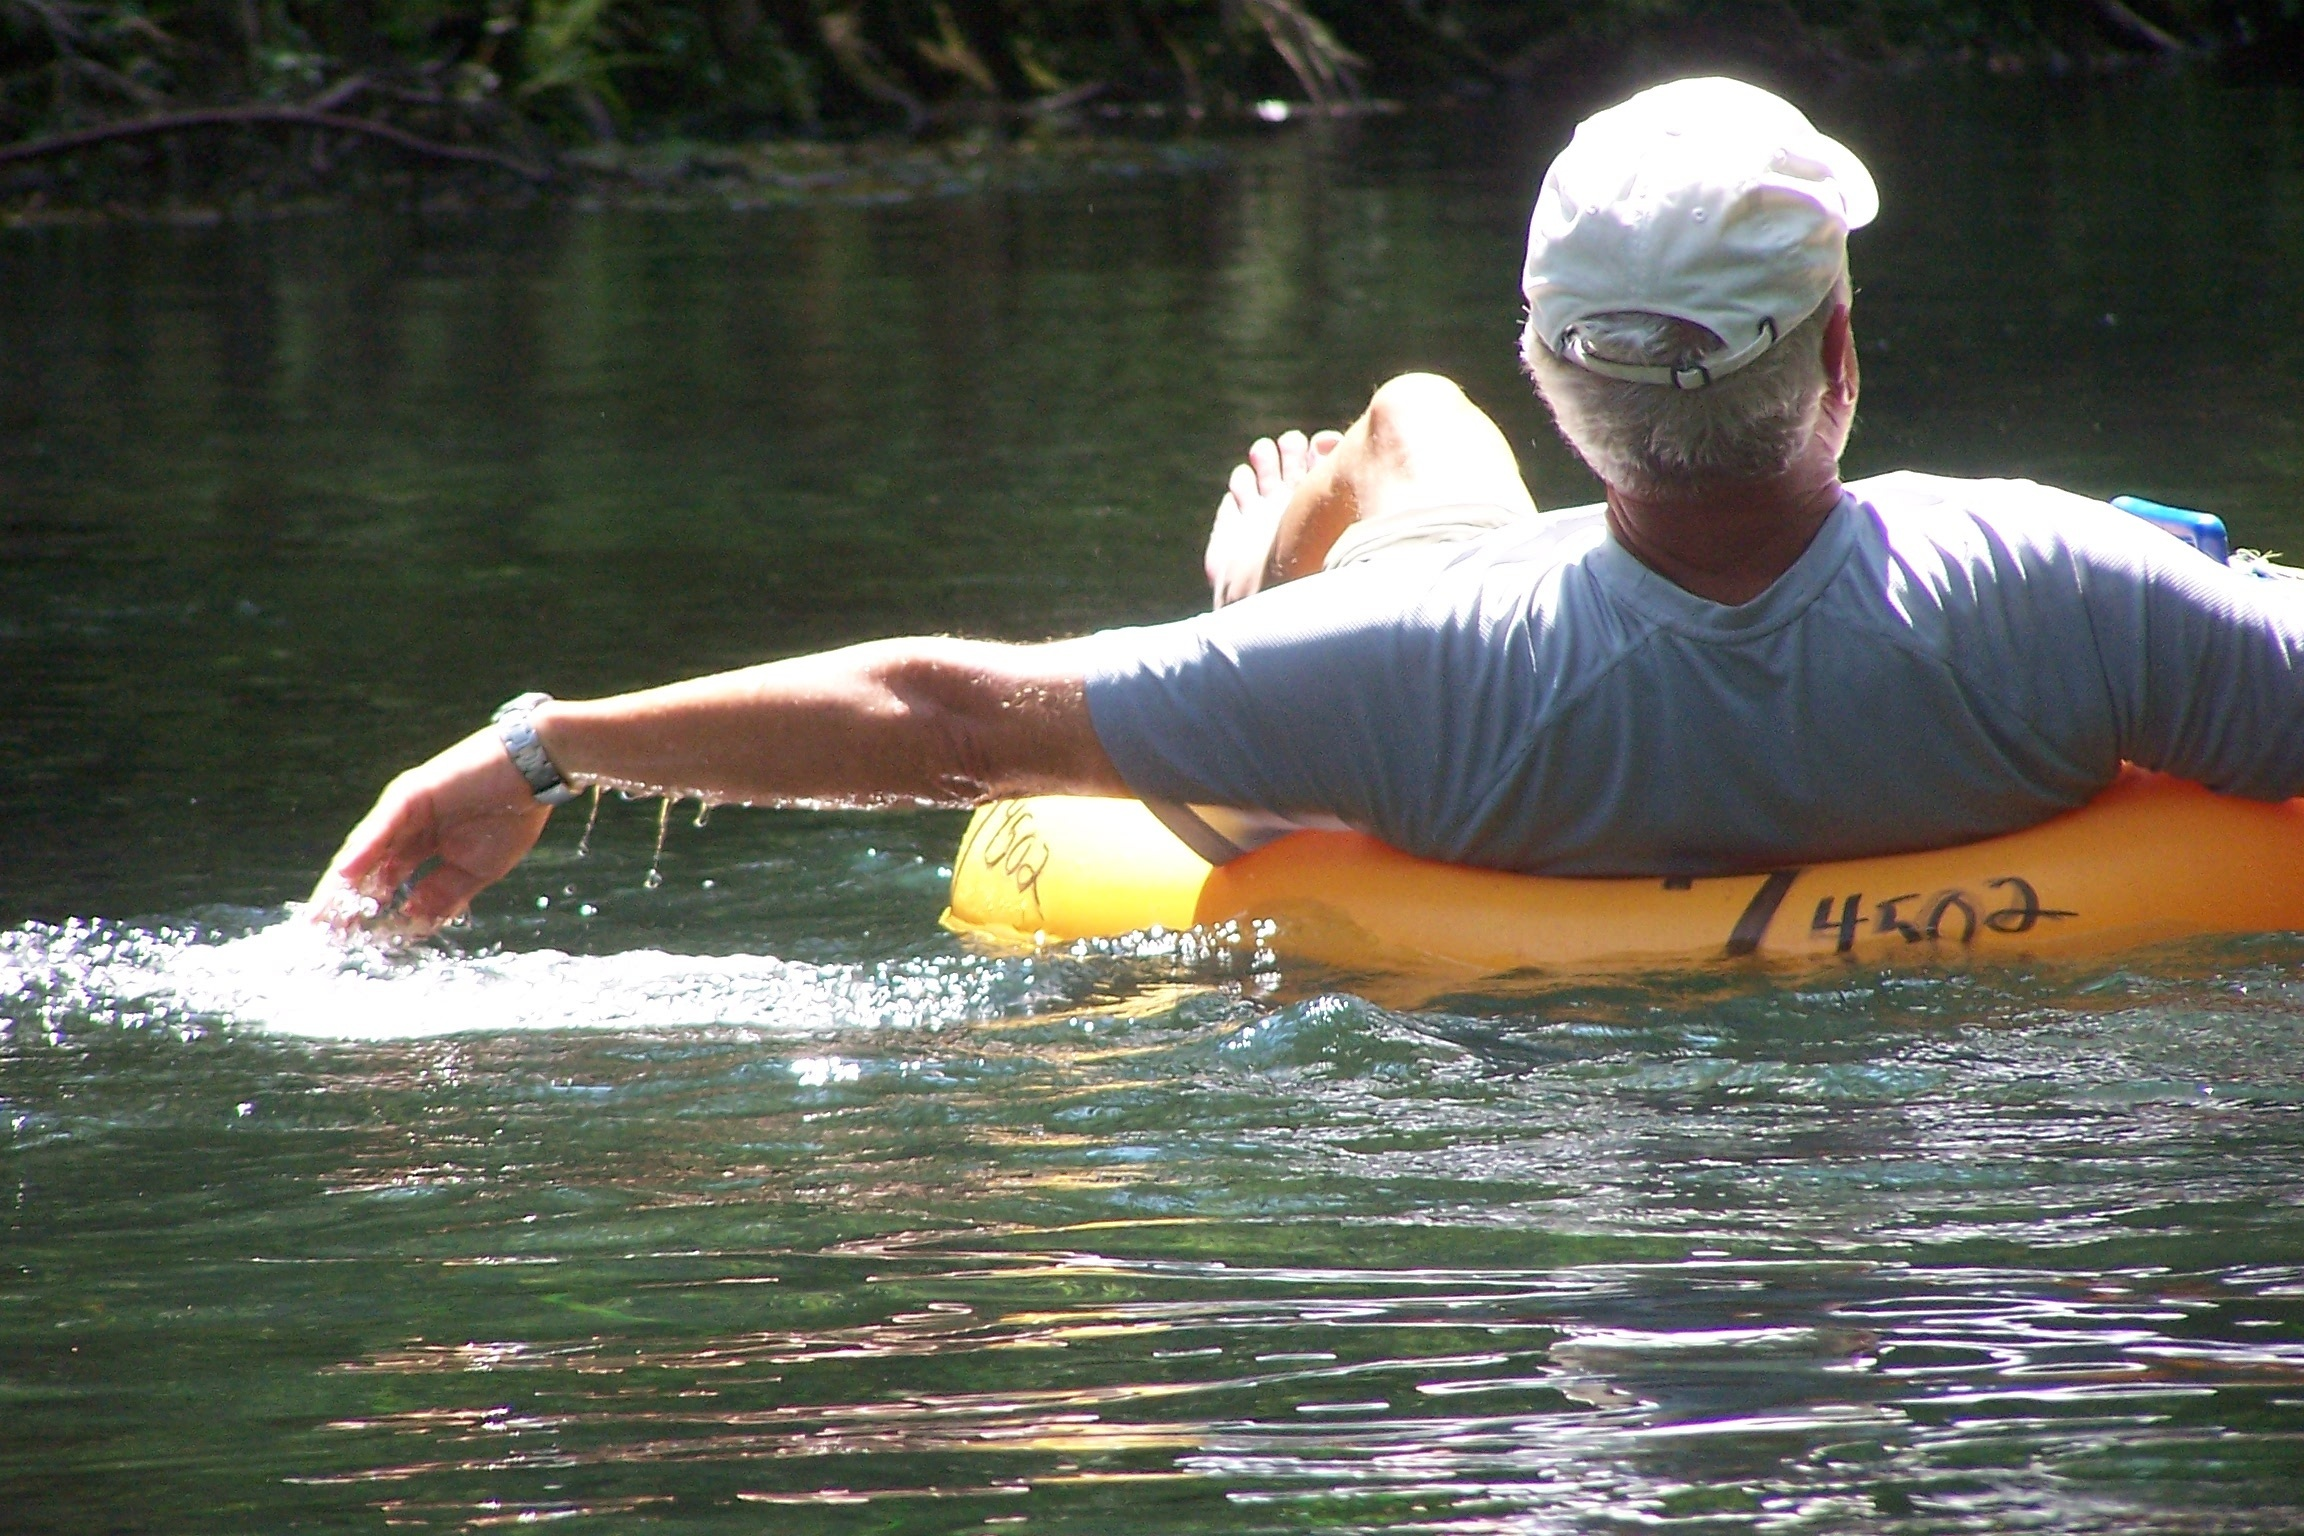 issp-river-rats-tennessee-3-8252010-6706